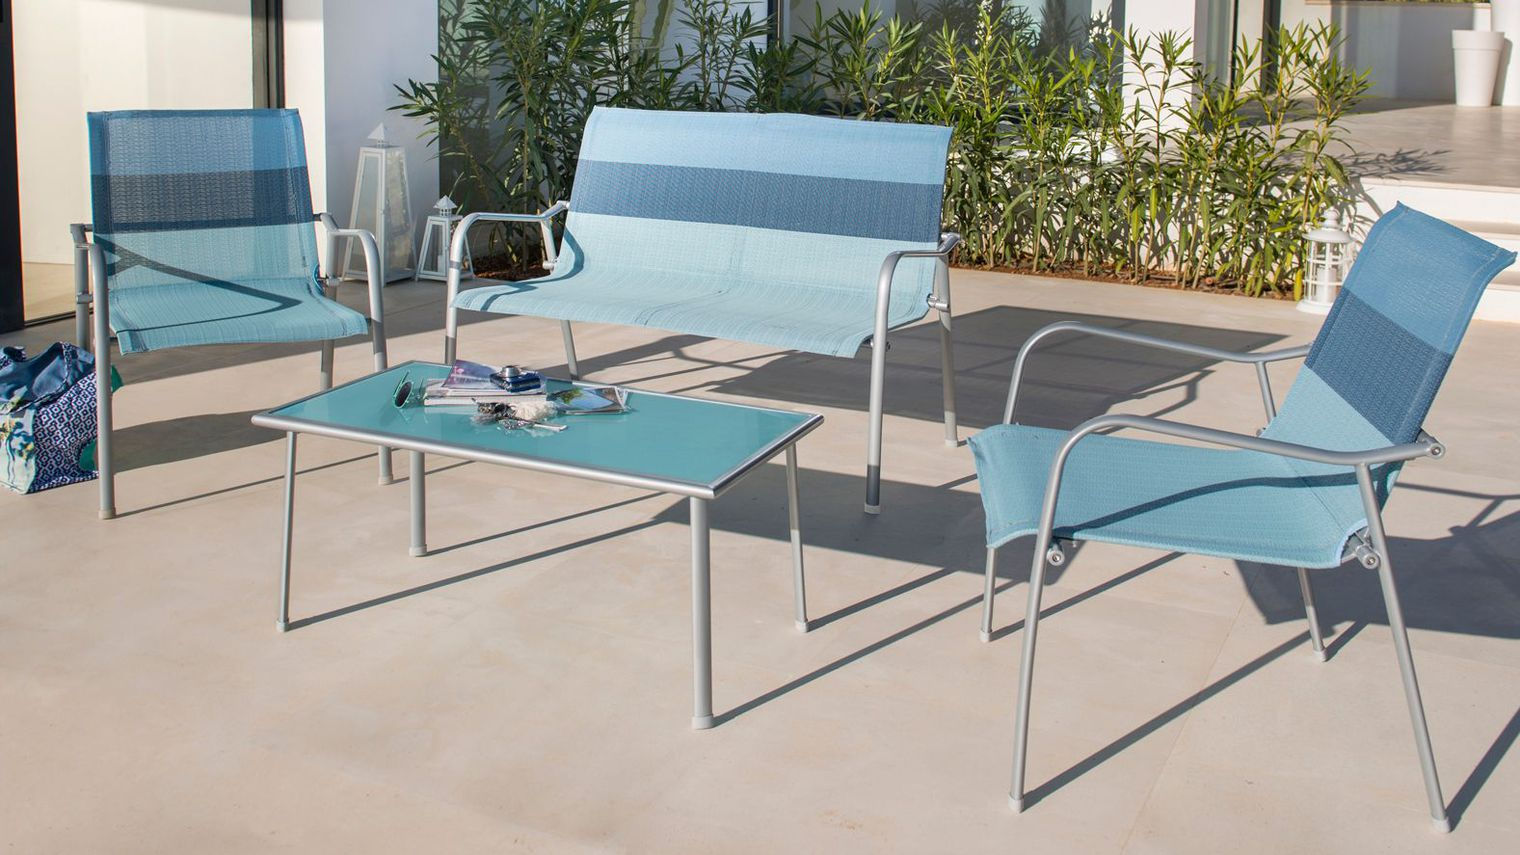 Table basse salon de jardin pas cher mobilier design for Table basse salon design pas cher